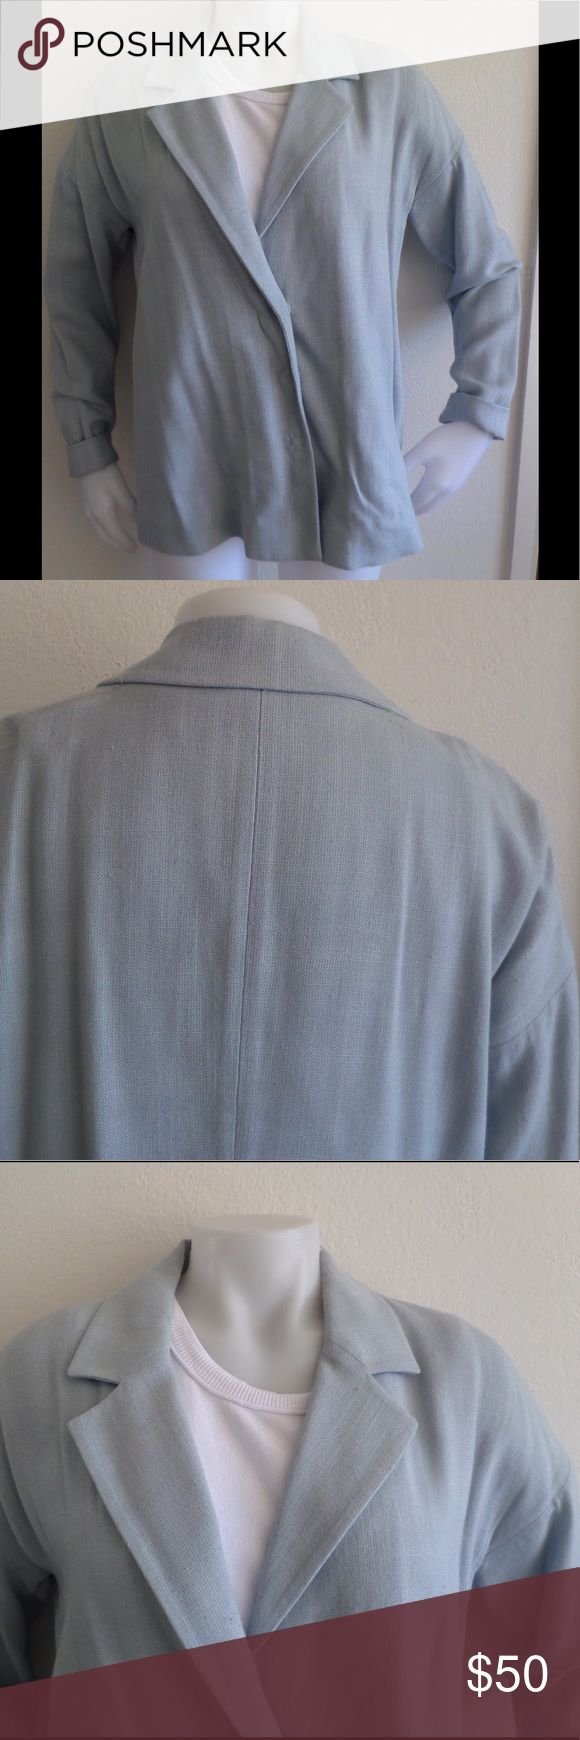 PRADA Light Blue Blazer Sz 46/10 From luxury brand Prada comes this simple elegant blazer. Made of 100% viscose. Notched lapel. Skinny arms. Two snap button closure. In very good condition with wear. Color is a light blue gray. Prada Jackets & Coats Blazers